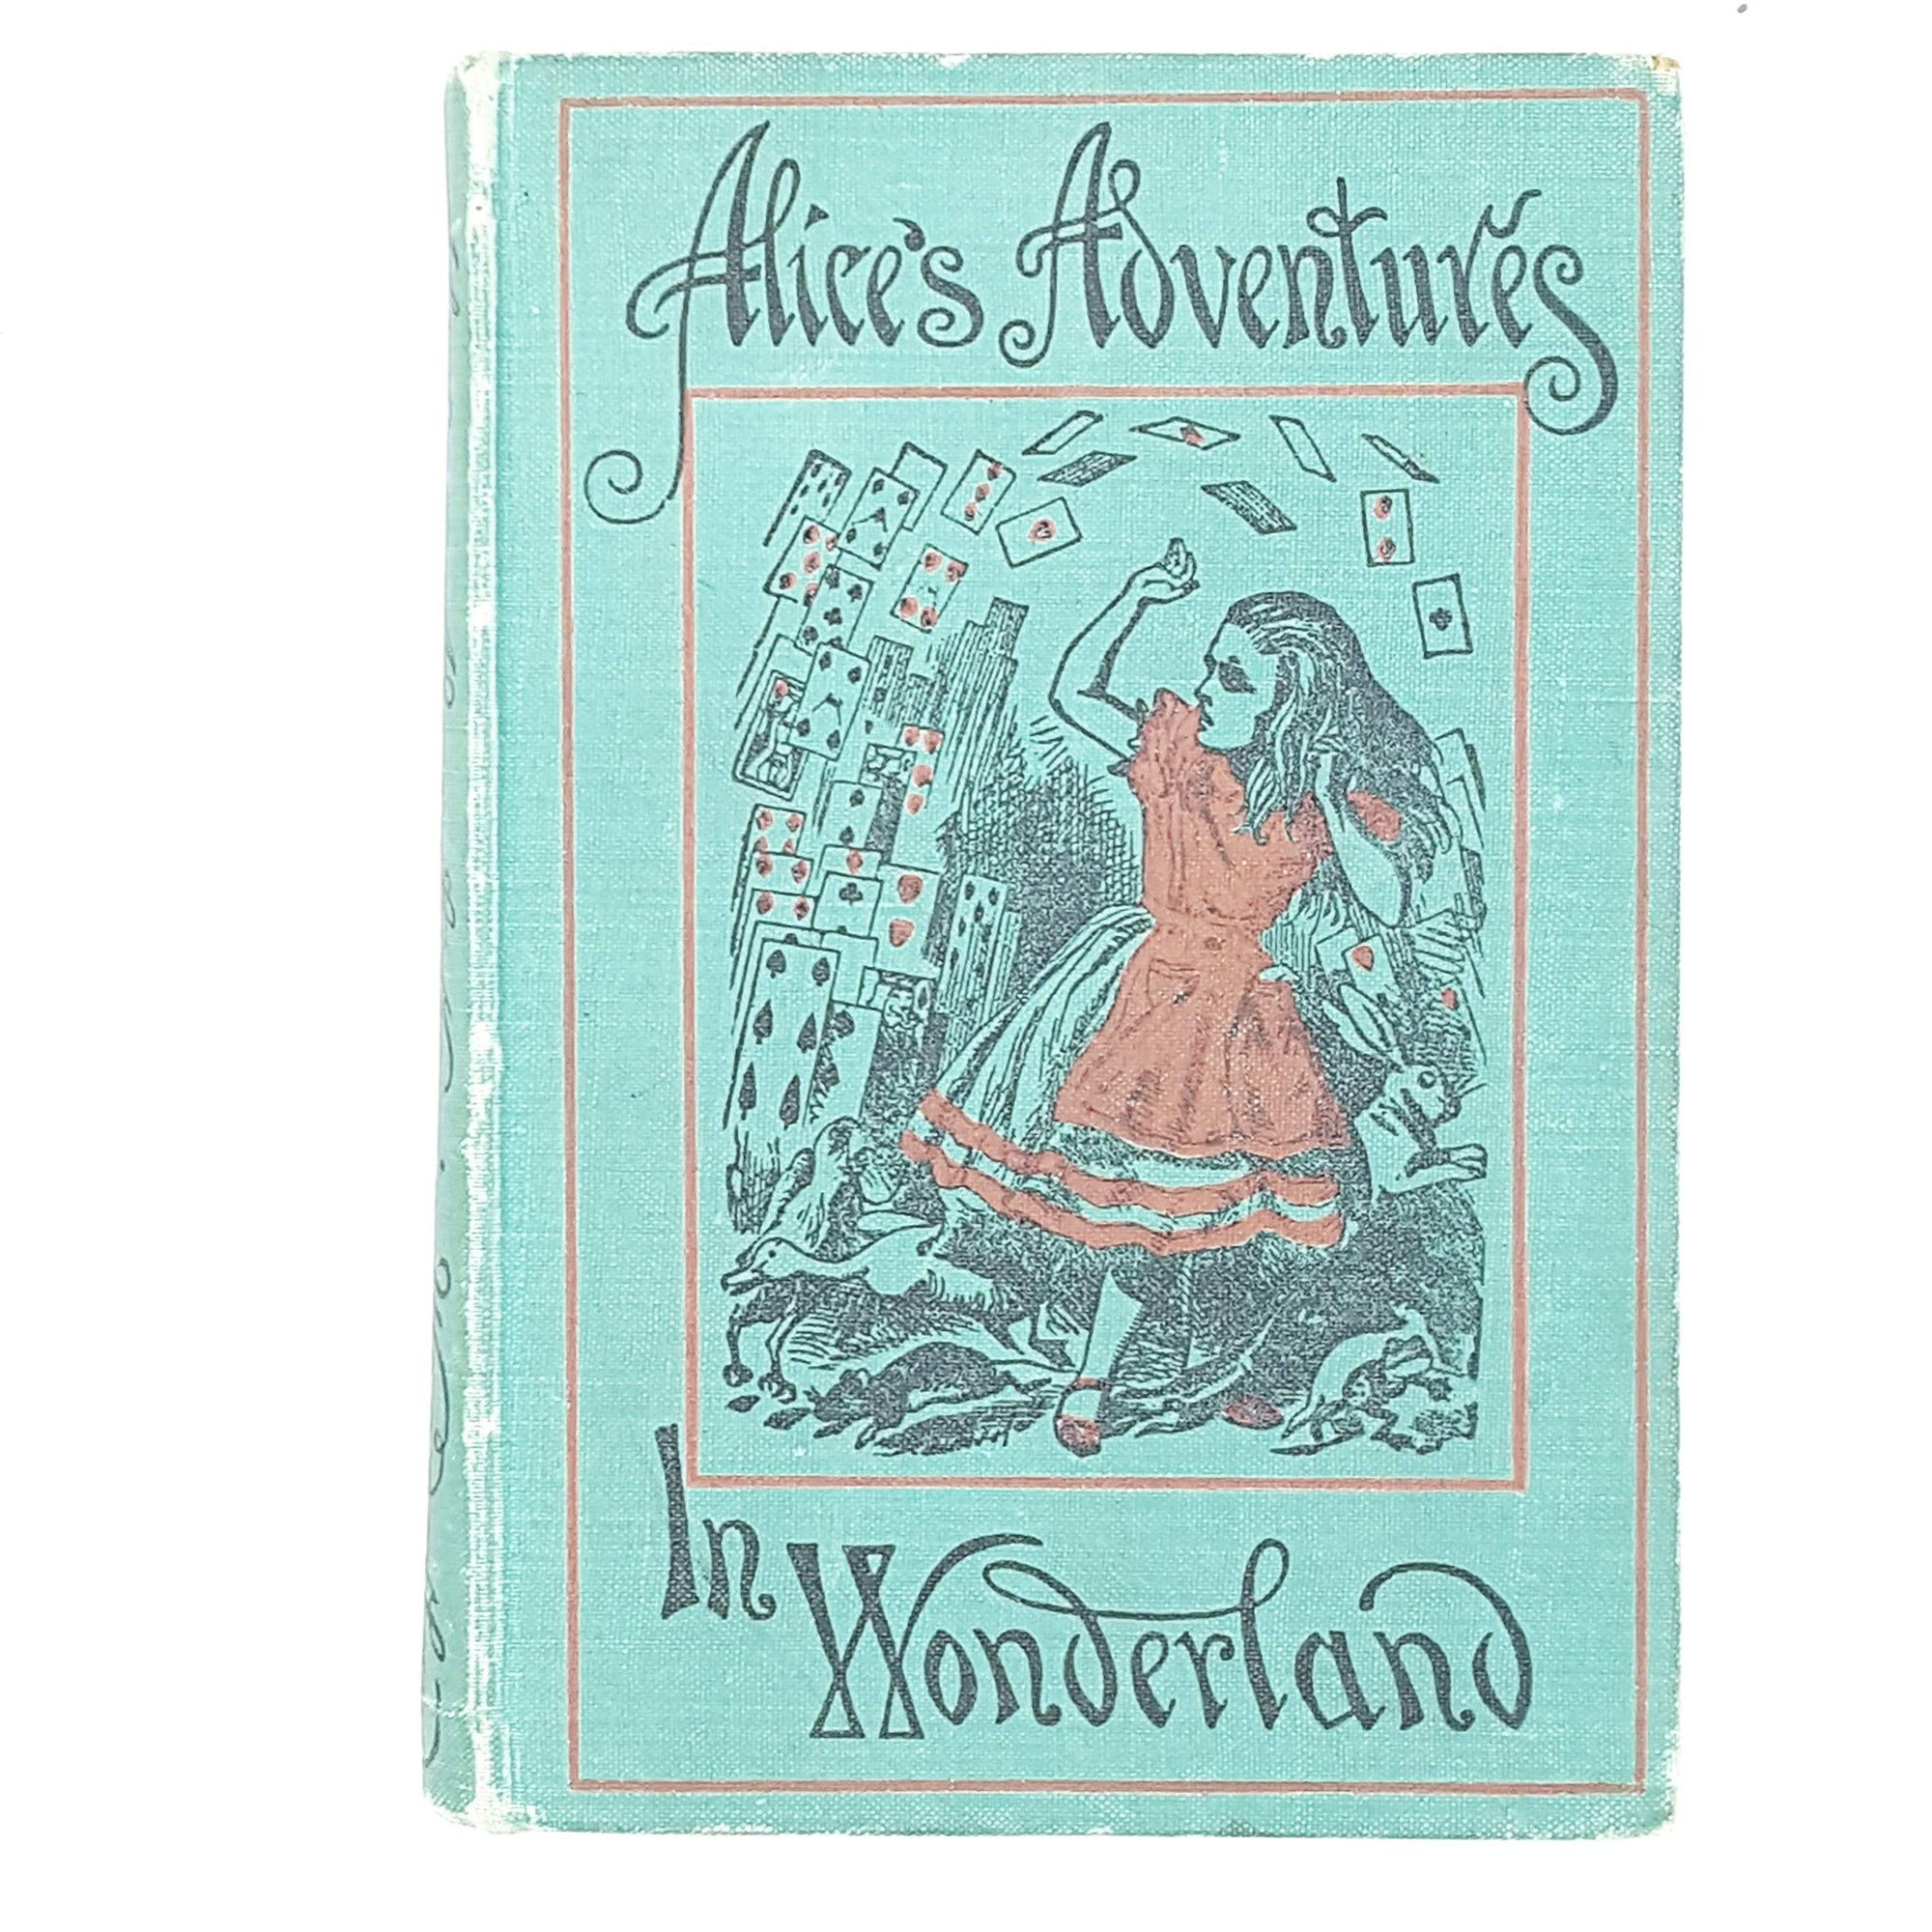 lewis-carrolls-alices-adventures-in-wonderland-turquoise-country-house-library